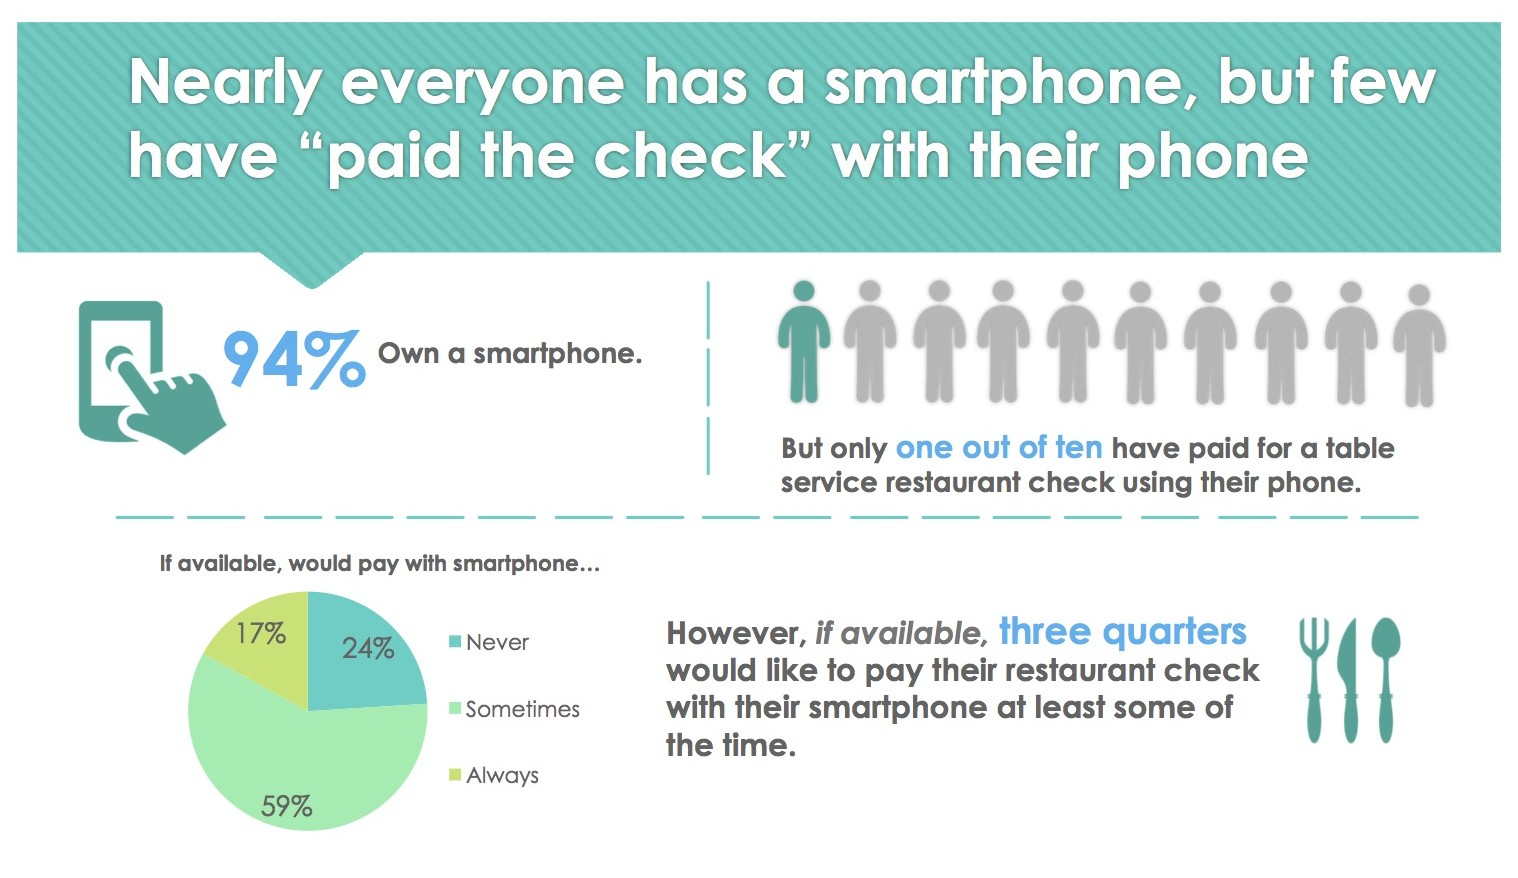 mobile payments in restaurants 2015 consumer study